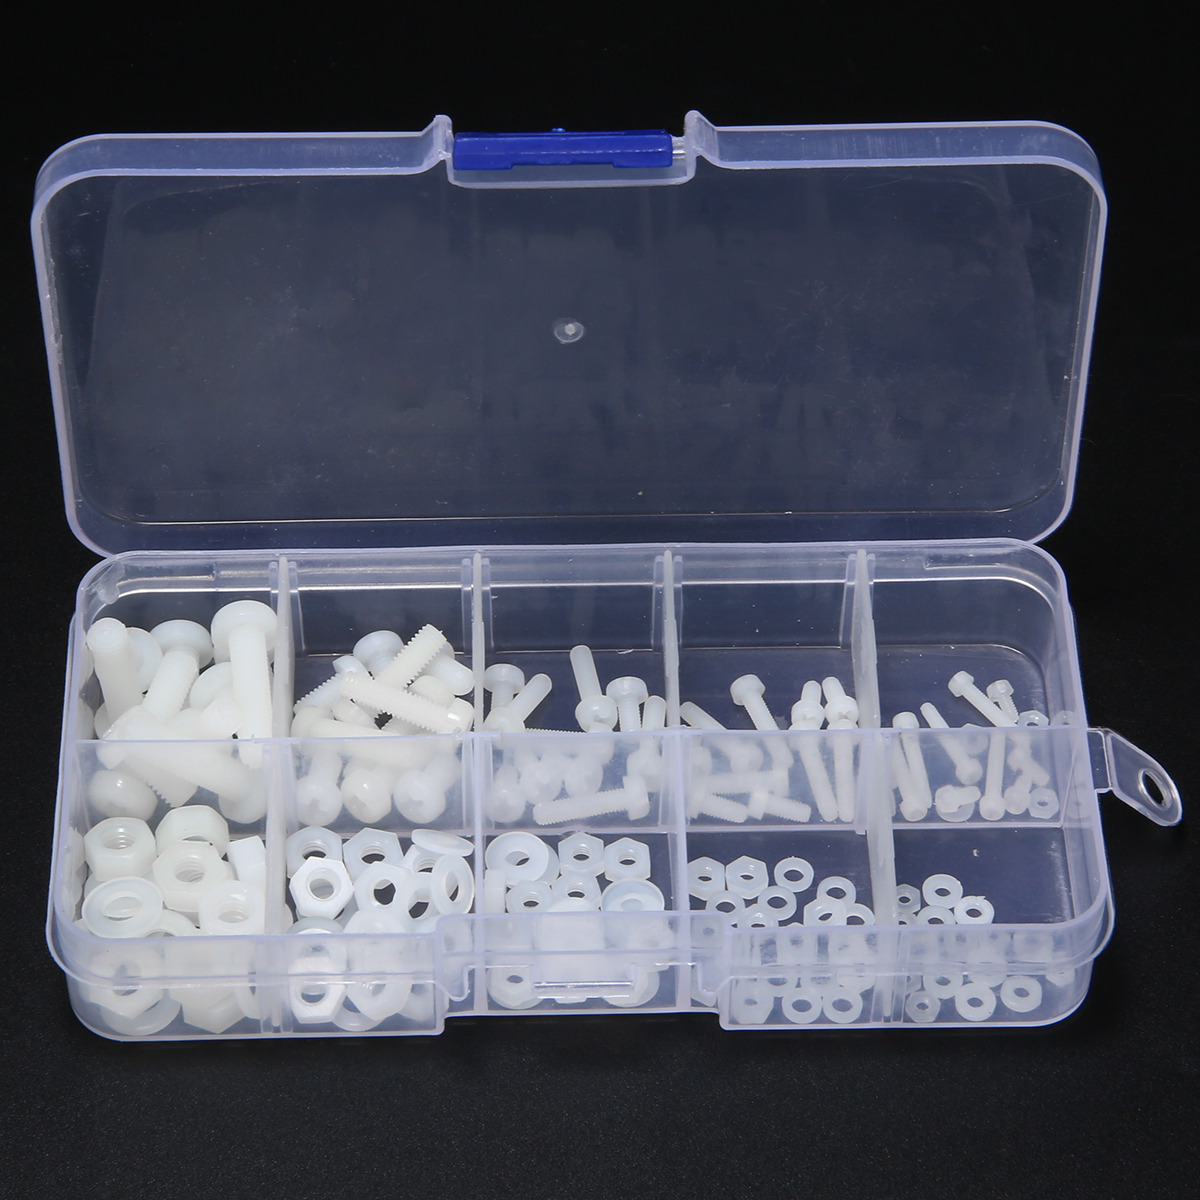 150pcs M2 M2.5 M3 M4 M5 White Nylon Hex Screw Bolt Nut Standoff Spacer Kit Non-magnetic with Plastic Box150pcs M2 M2.5 M3 M4 M5 White Nylon Hex Screw Bolt Nut Standoff Spacer Kit Non-magnetic with Plastic Box